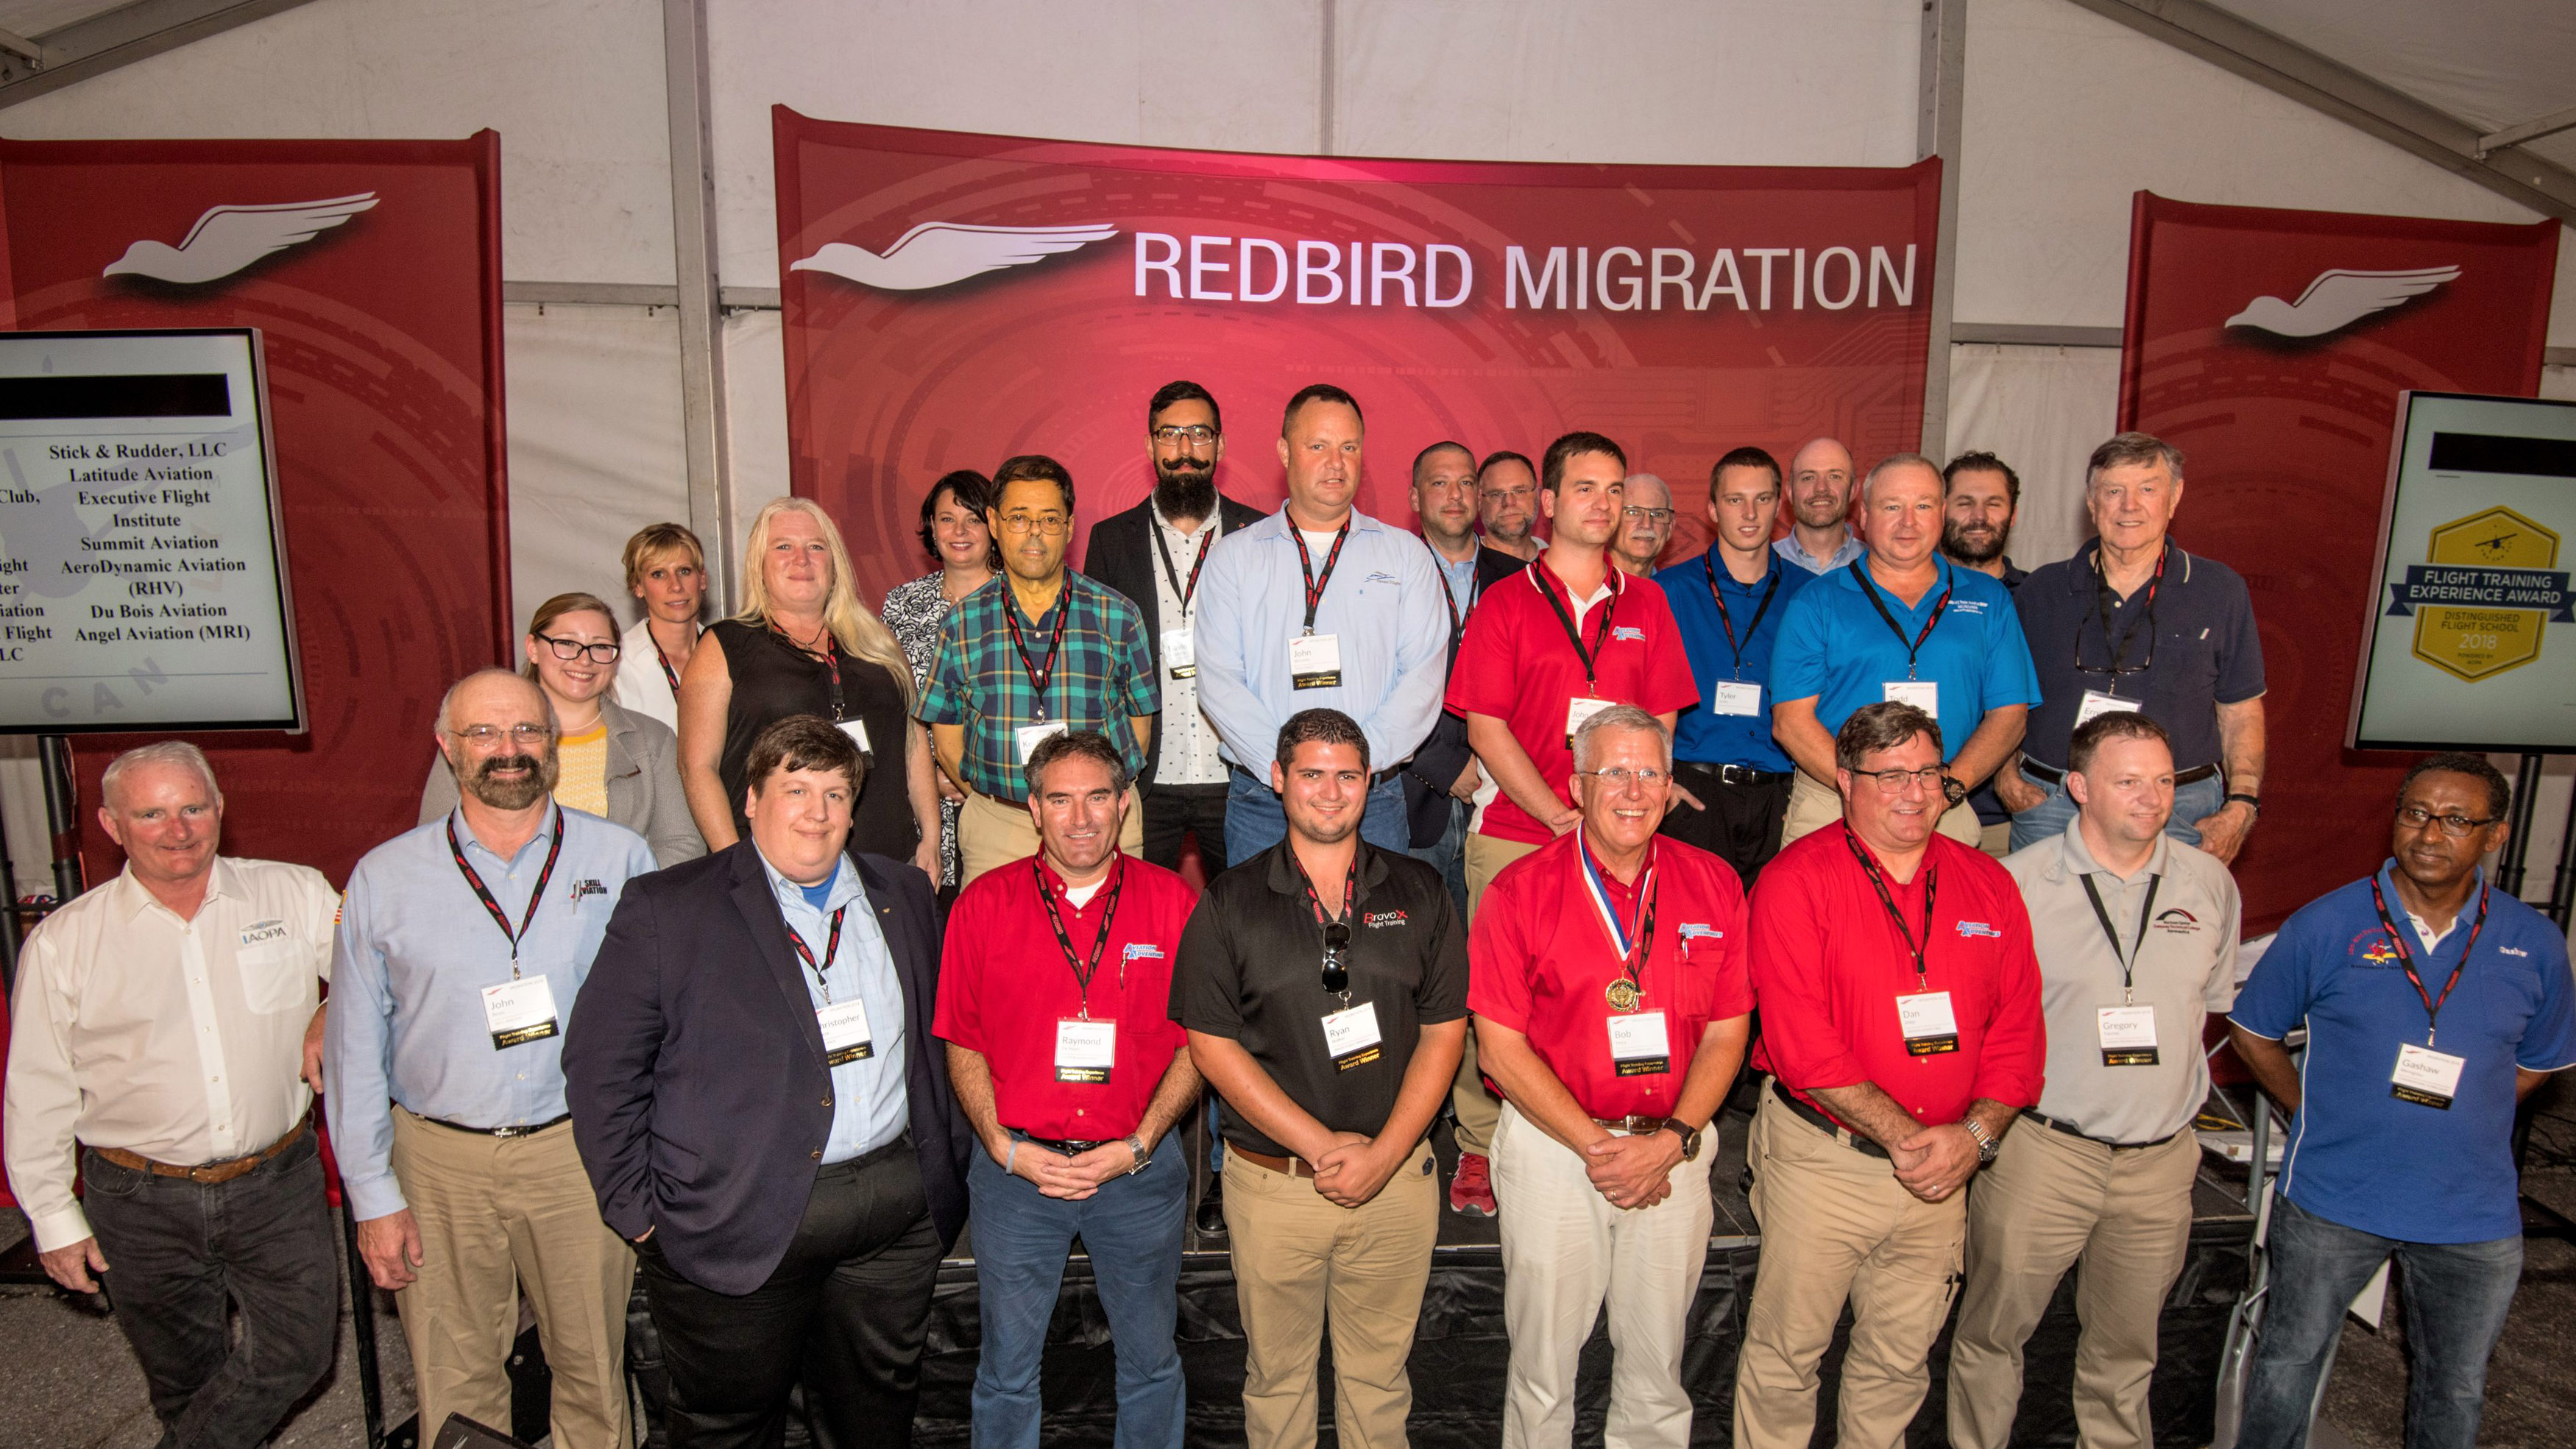 Distinguished regional flight instructor winners join AOPA President Mark Baker and You Can Fly staff members for a group photo during the 2018 AOPA Flight Training Experience Awards presentation at Redbird Migration, held at the AOPA You Can Fly Academy. Photo by Mike Collins.